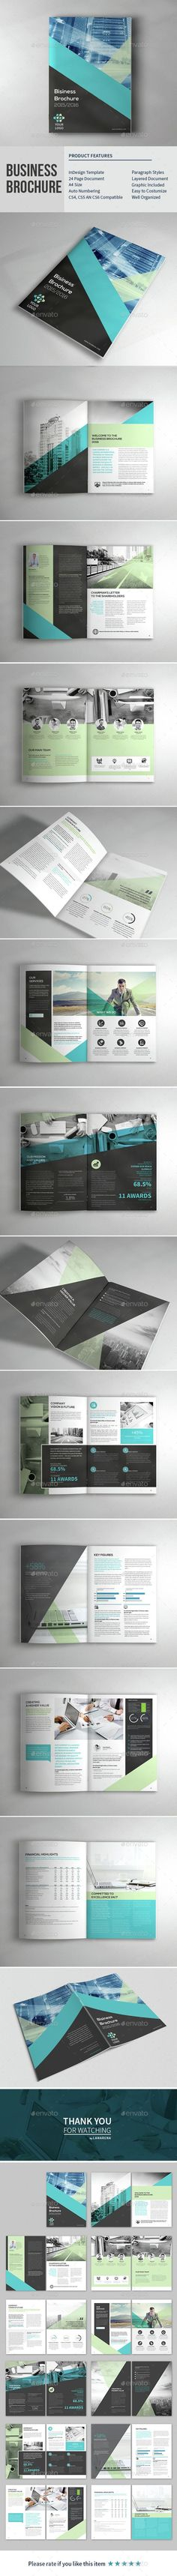 Business Corporate Brochure Template InDesign INDD. Download here: http://graphicriver.net/item/business-corporate-brochure/15241933?ref=ksioks: